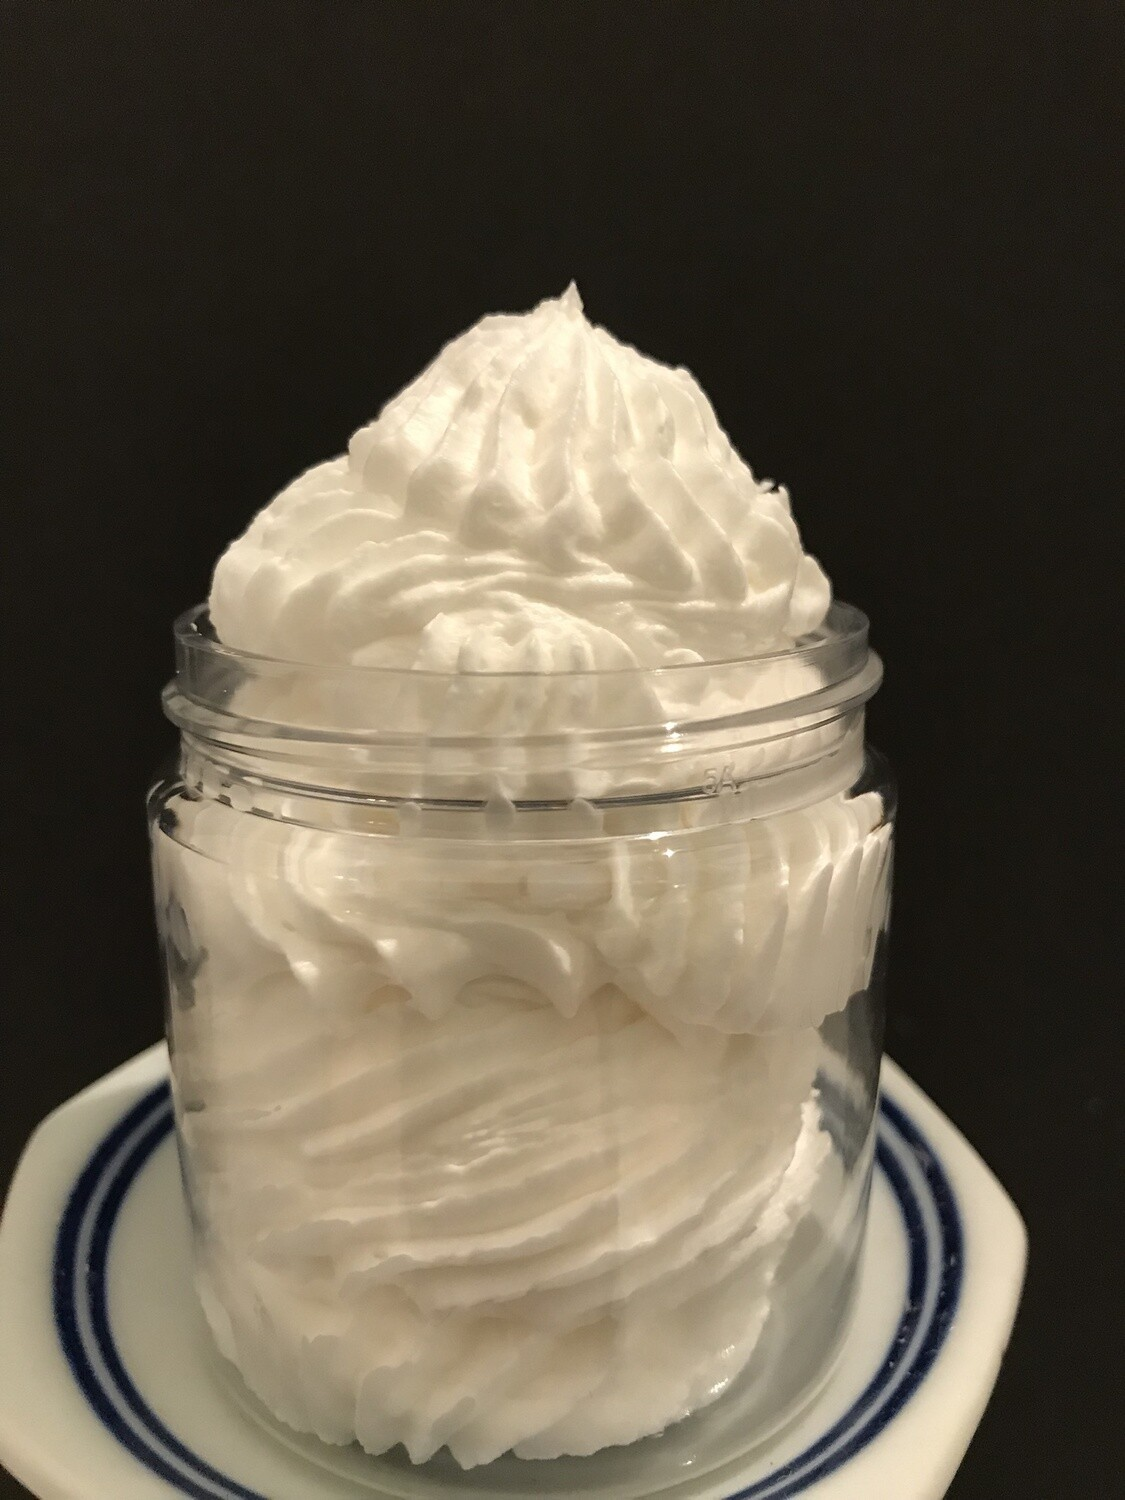 Lemongrass/Eucalyptus Whipped Body Butter